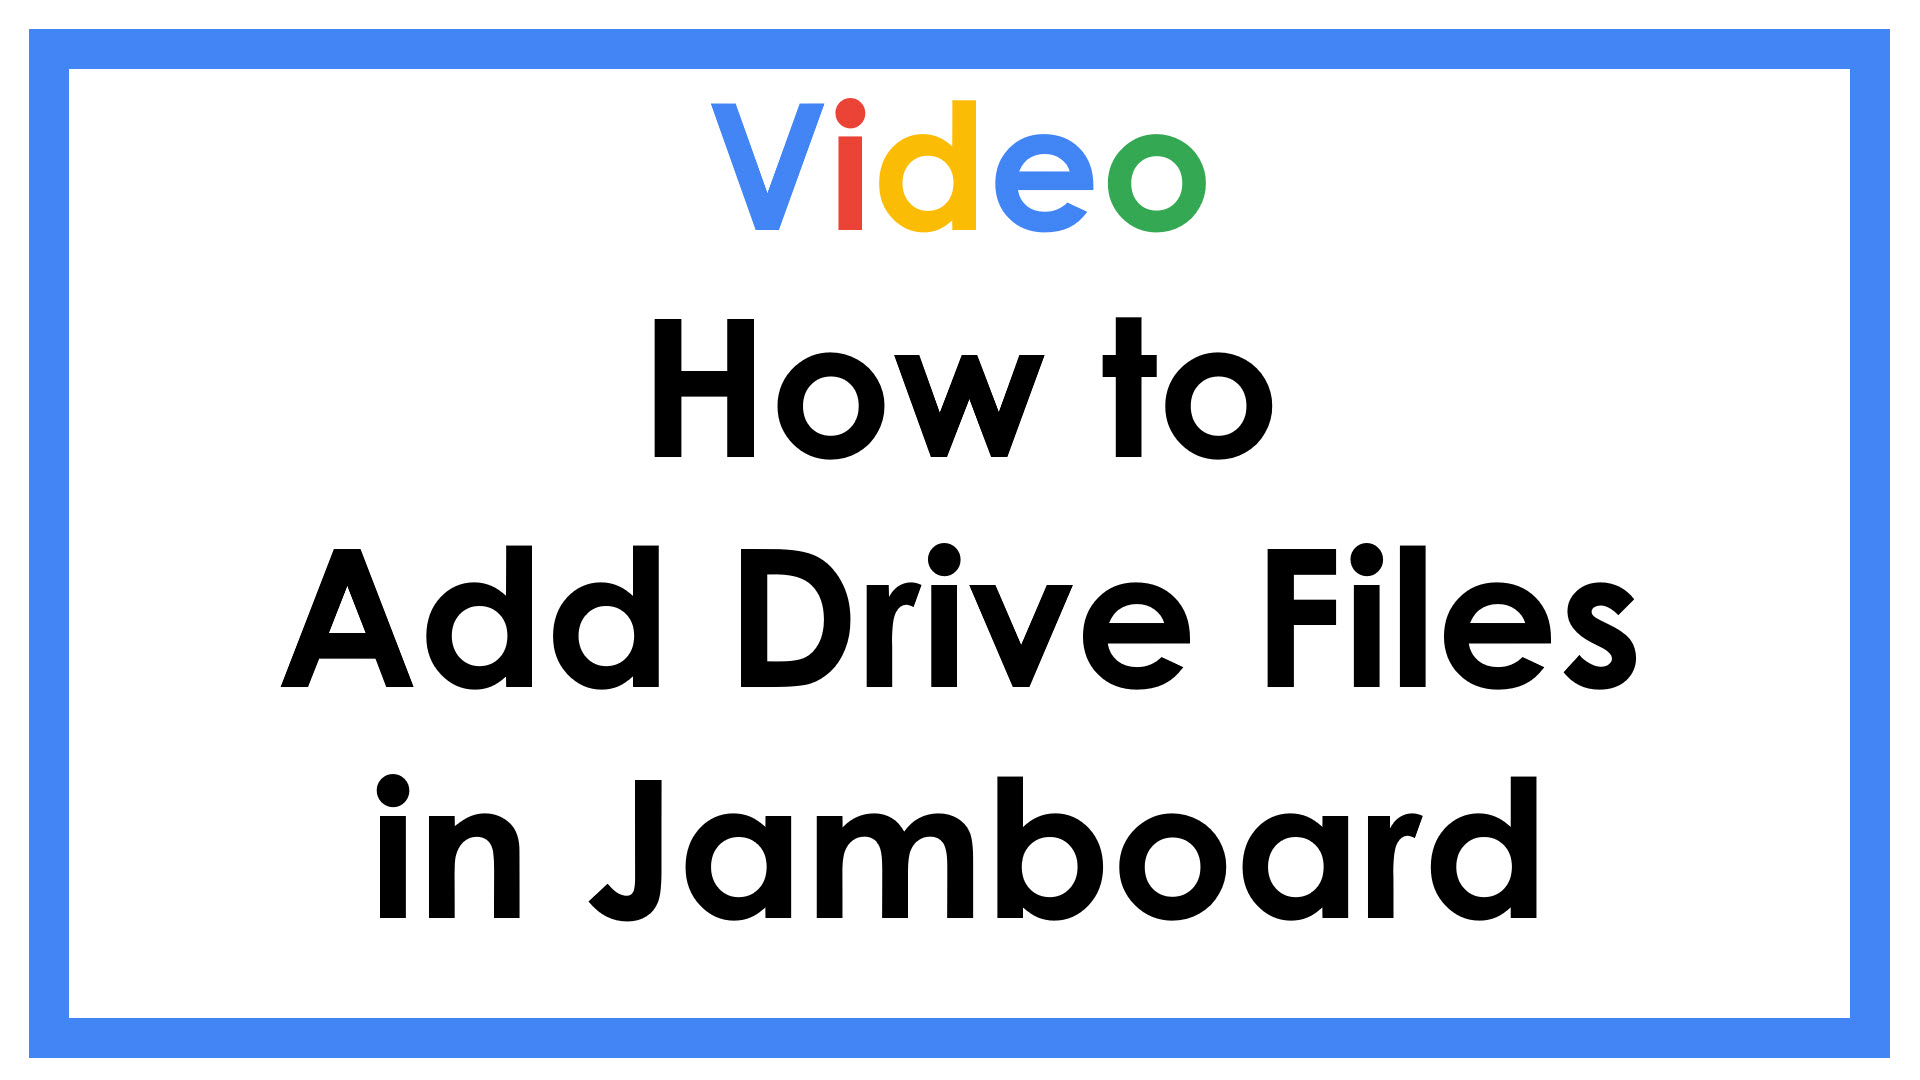 Adding Drive files in Jamboard